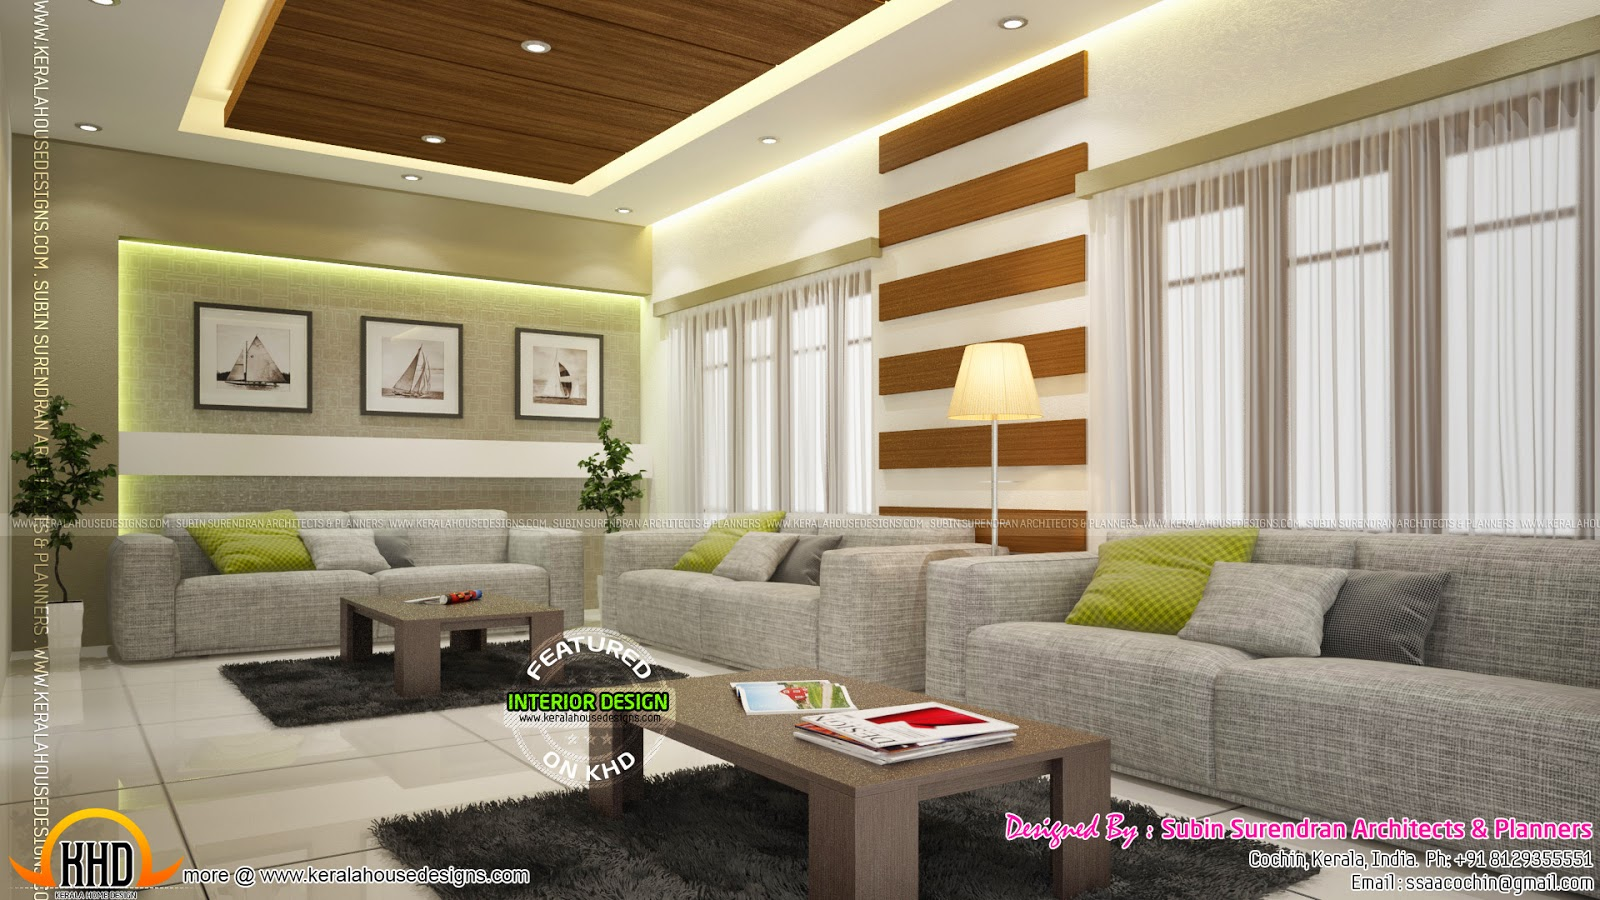 News and article online for Kenyan living room designs